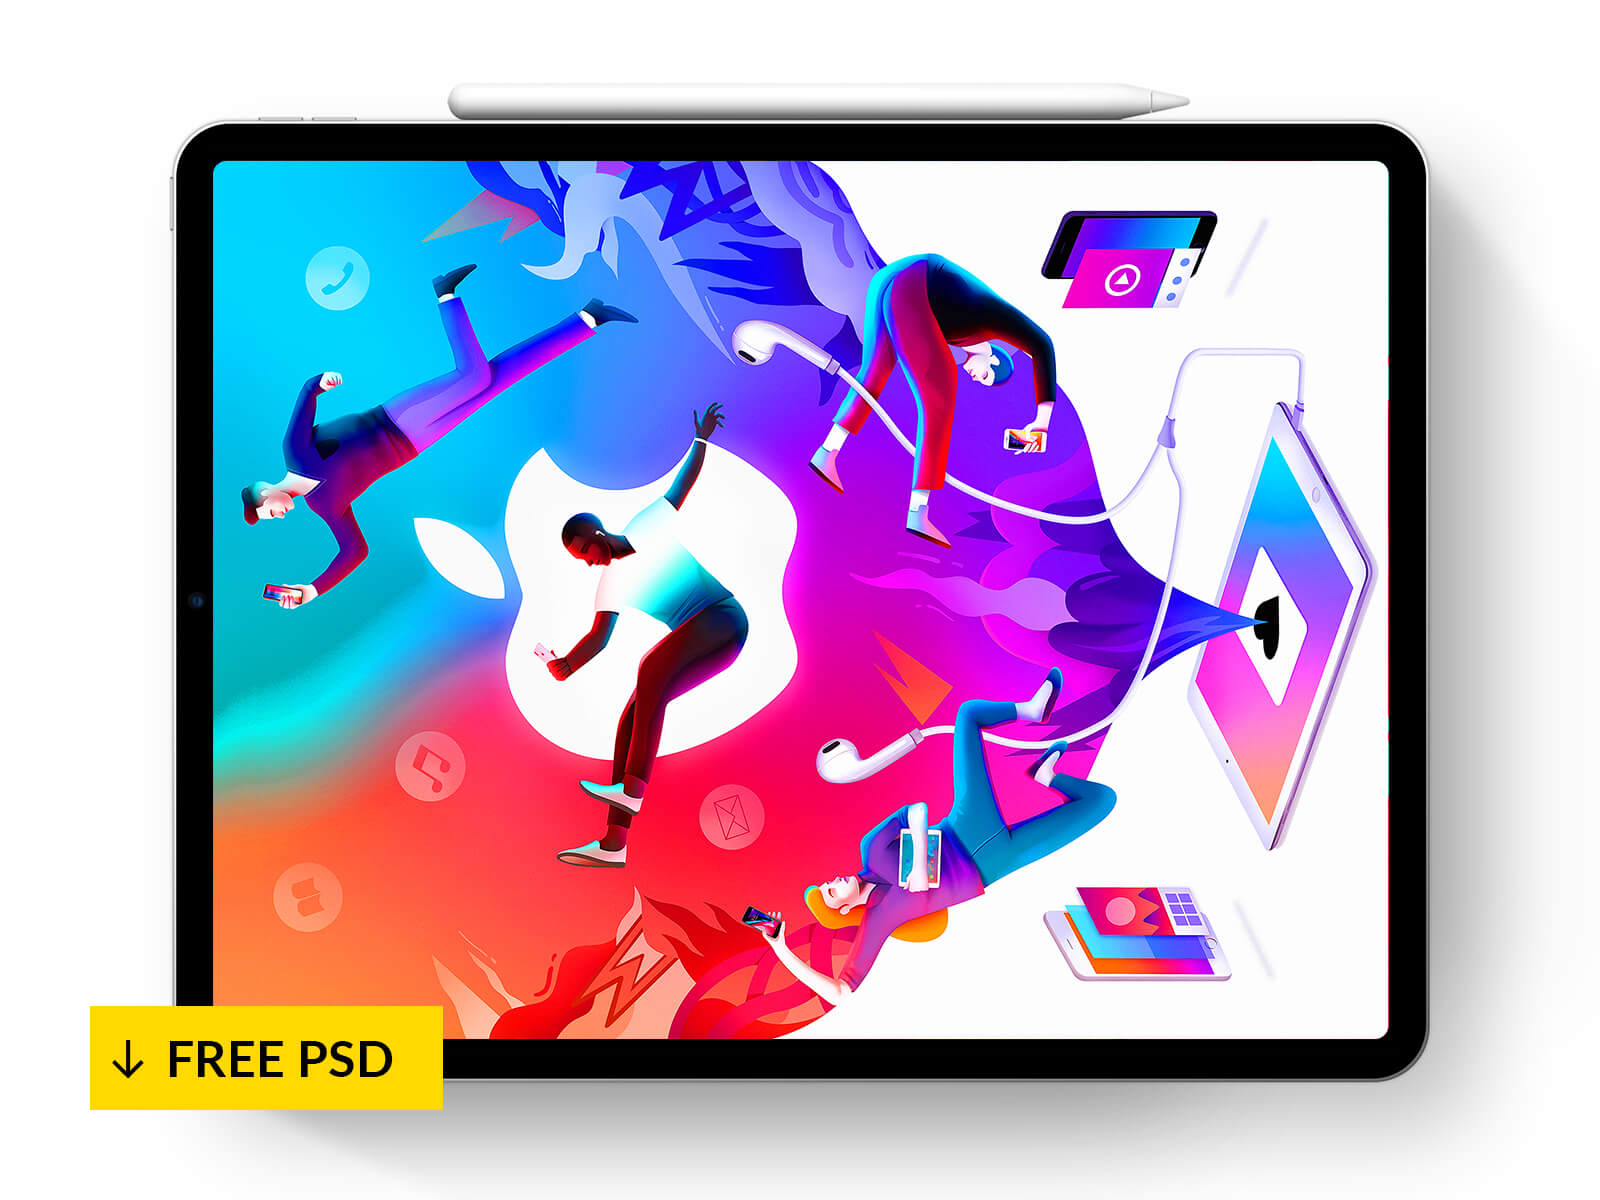 IPad Pro + Pencil 2018 – Mockup [FREE PSD]